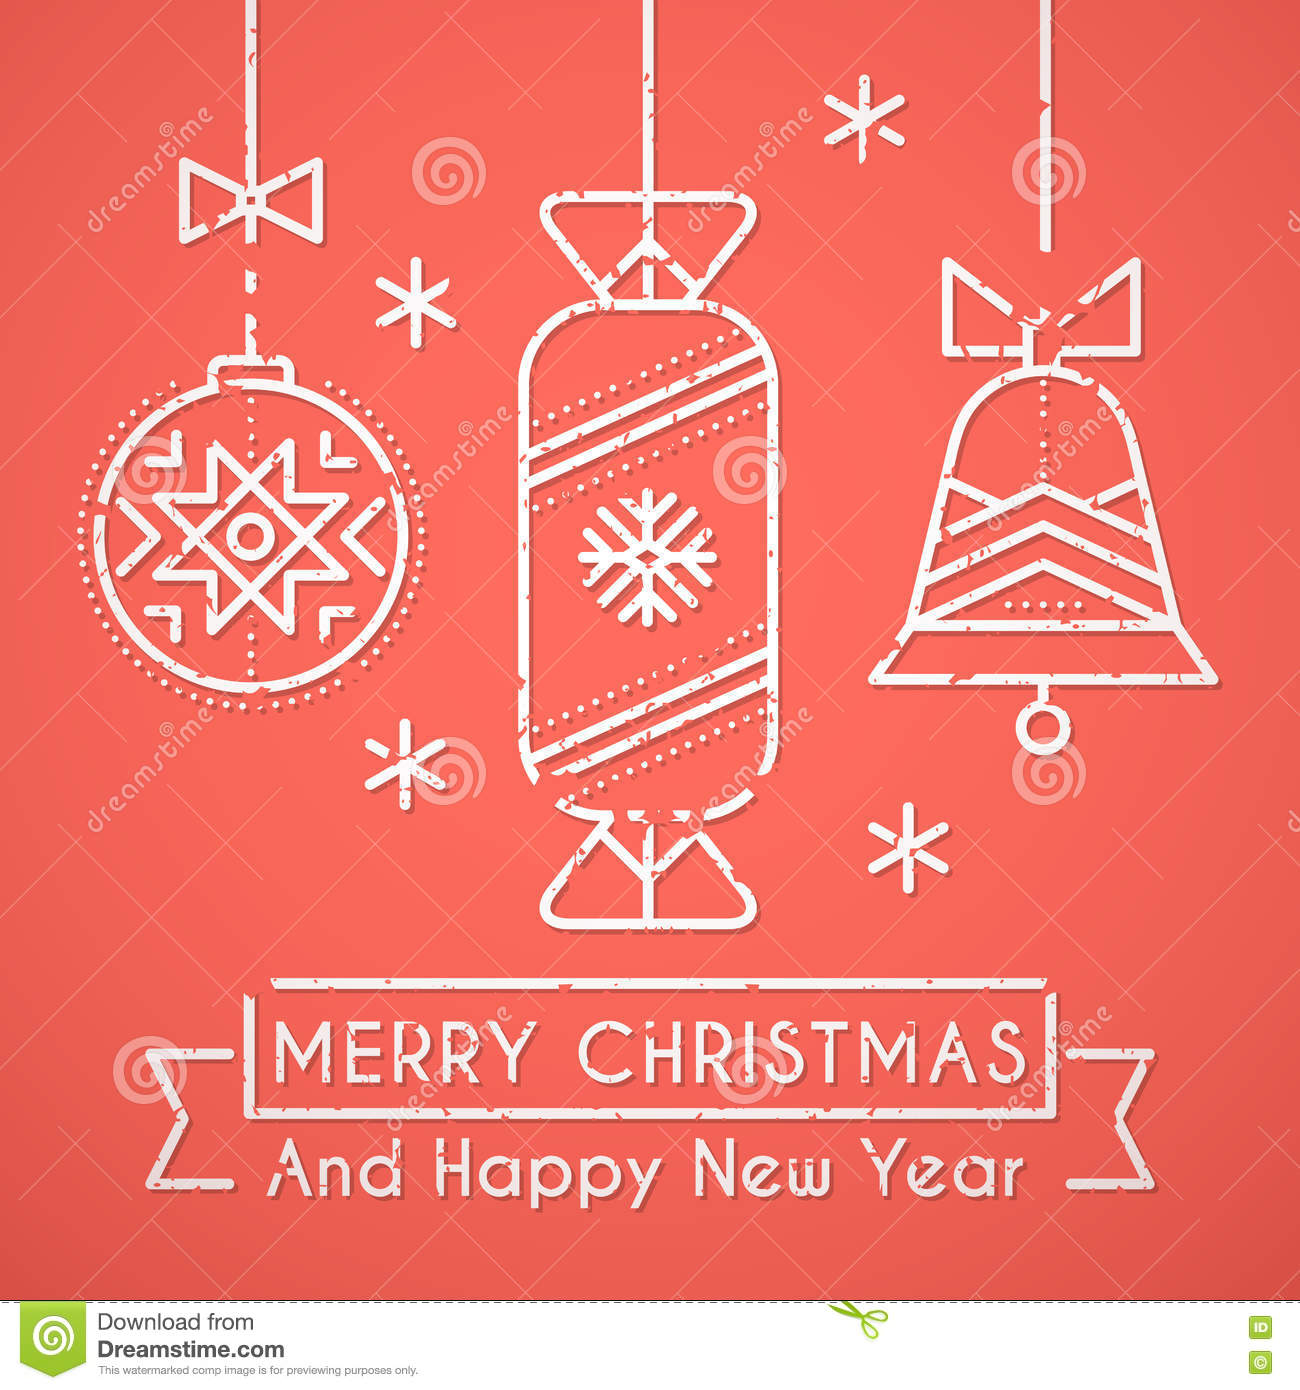 Merry Christmas And Happy New Year Greeting Card Template – New Year Greeting Card Template